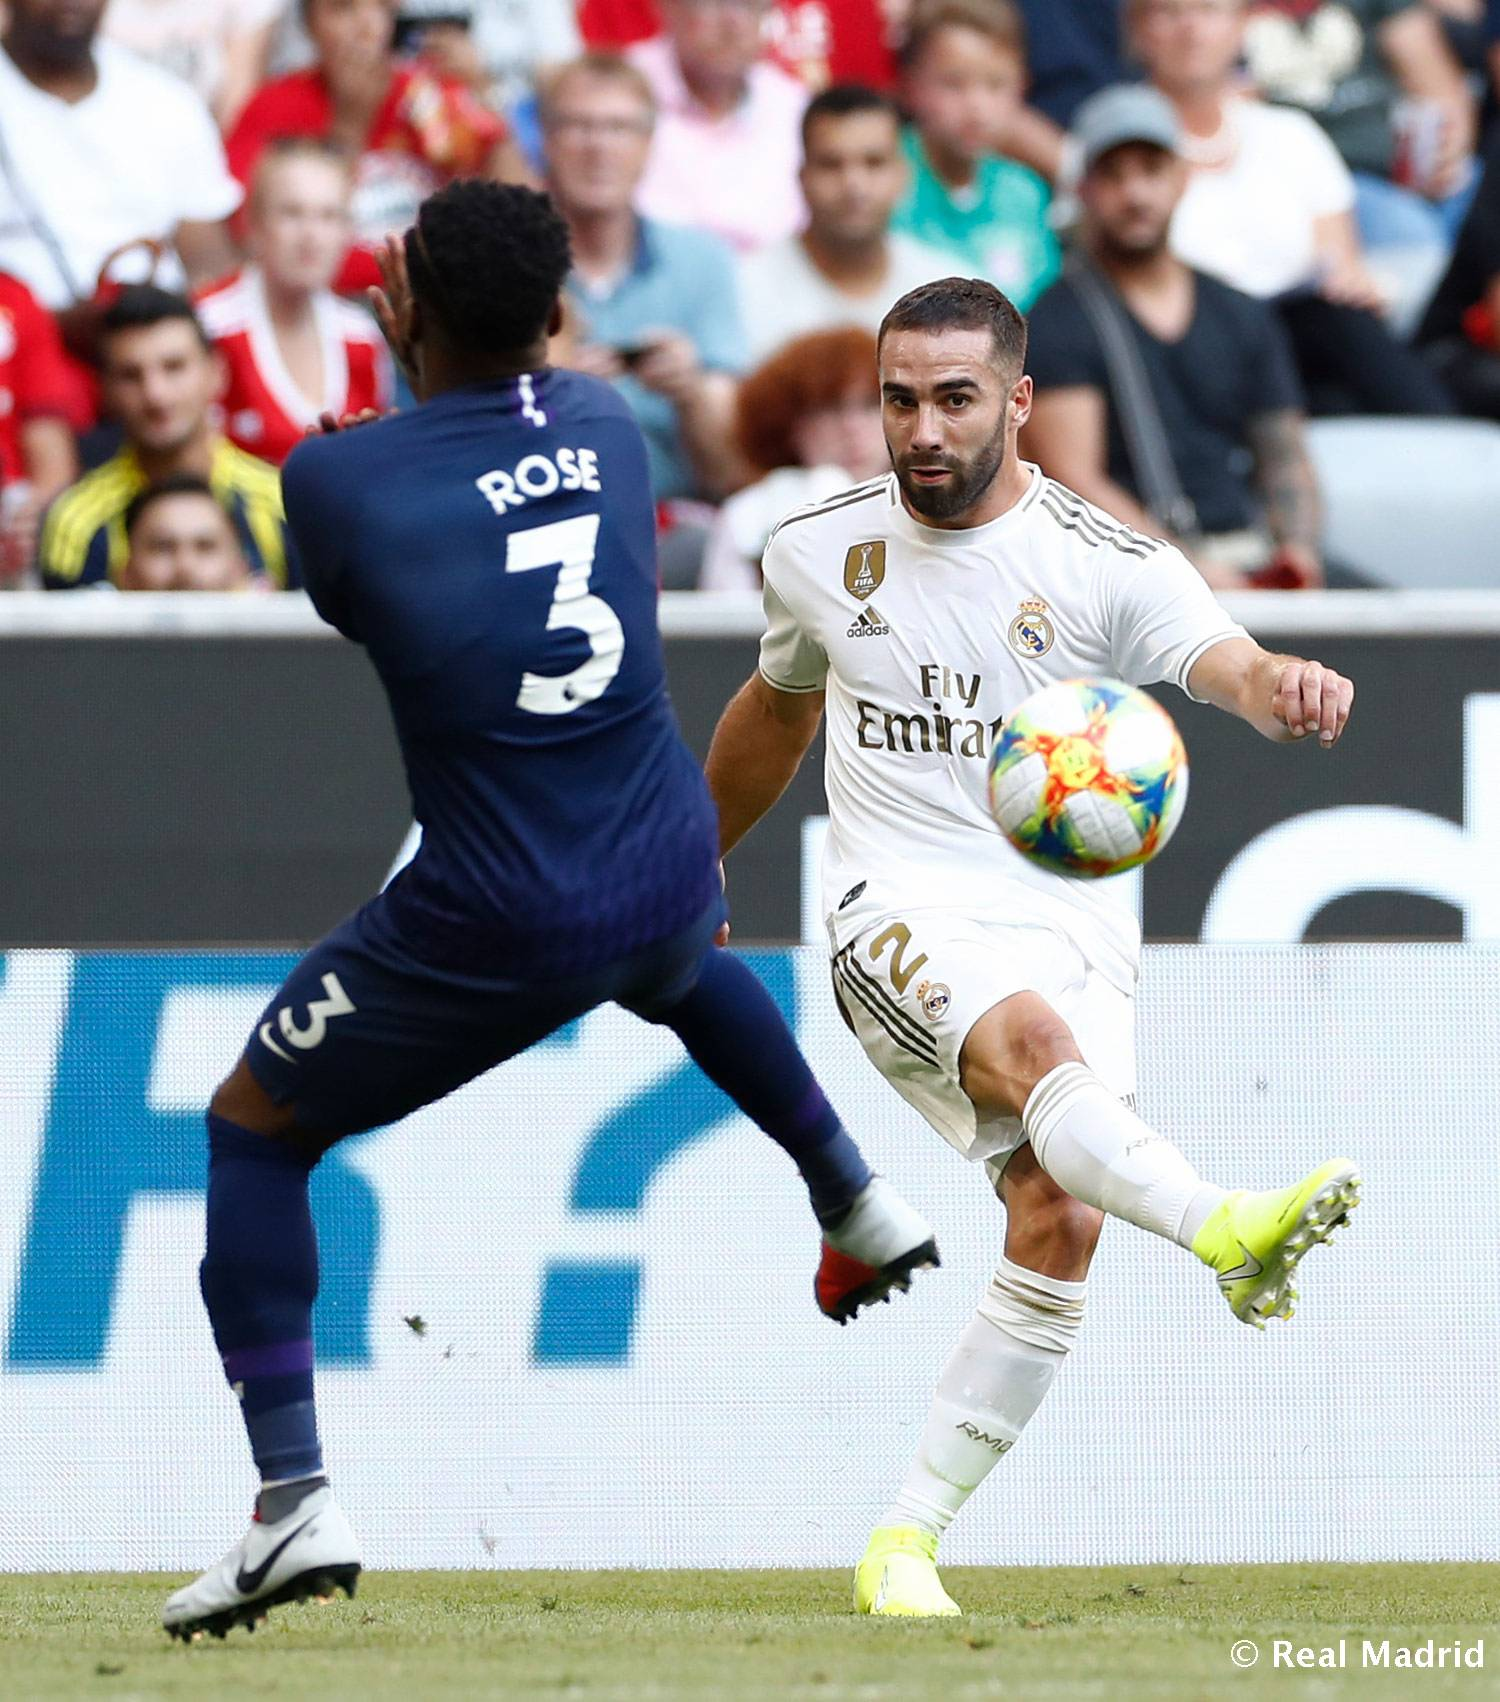 Real Madrid - Real Madrid - Tottenham - 30-07-2019